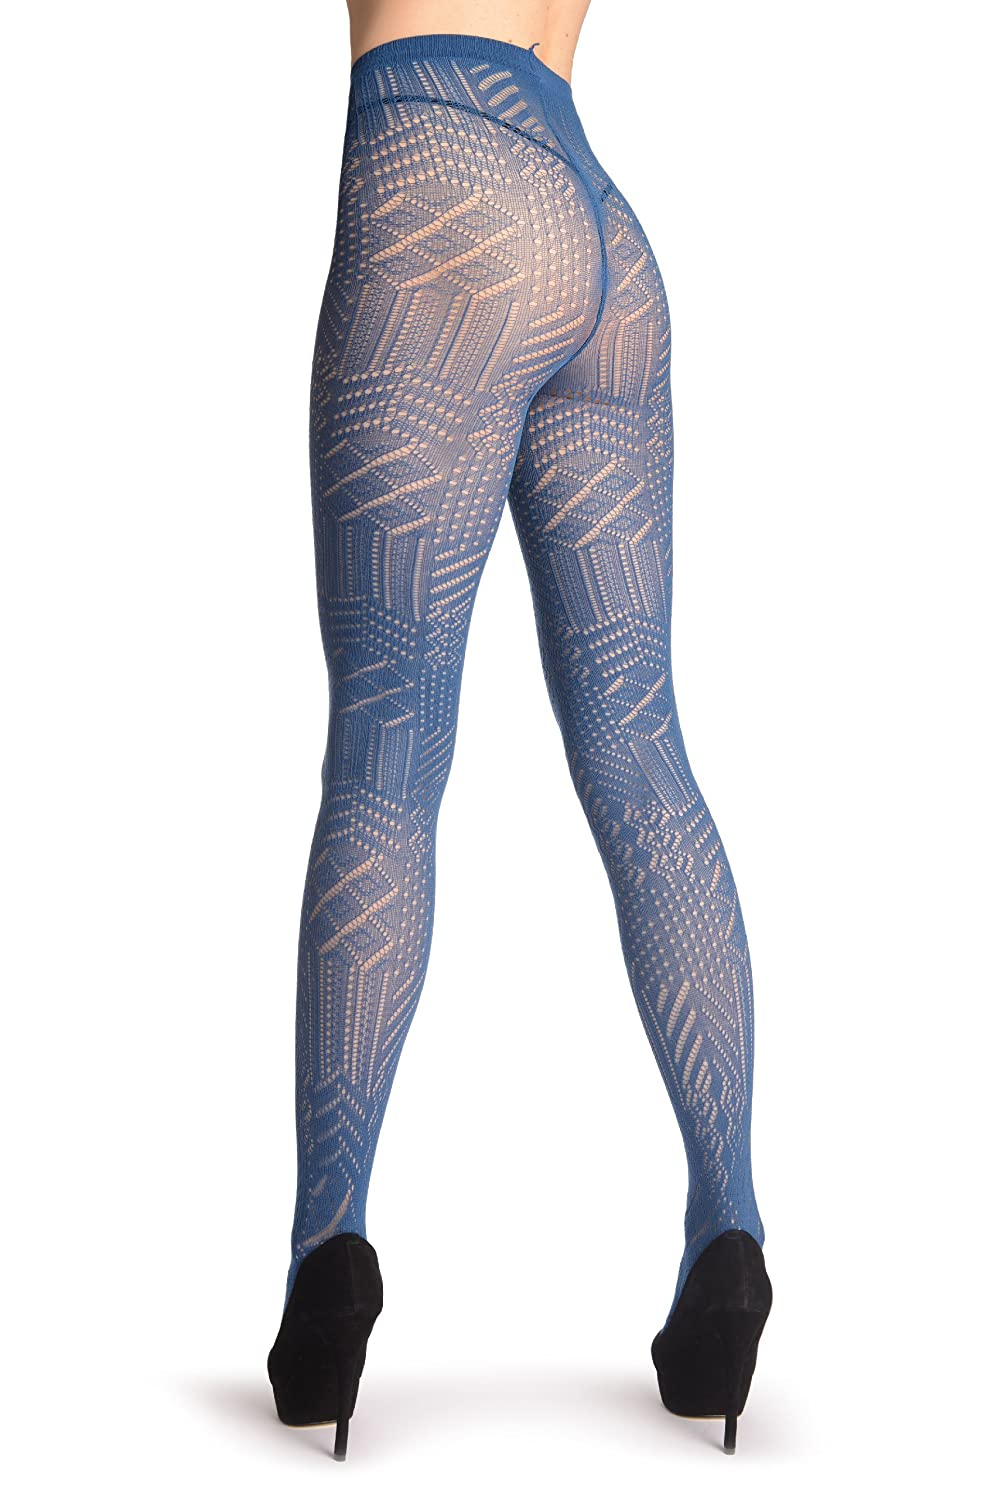 1d99fa3ef3a Navy Blue Geometrical Crochet Lace - Pantyhose (Tights) at Amazon Women s  Clothing store